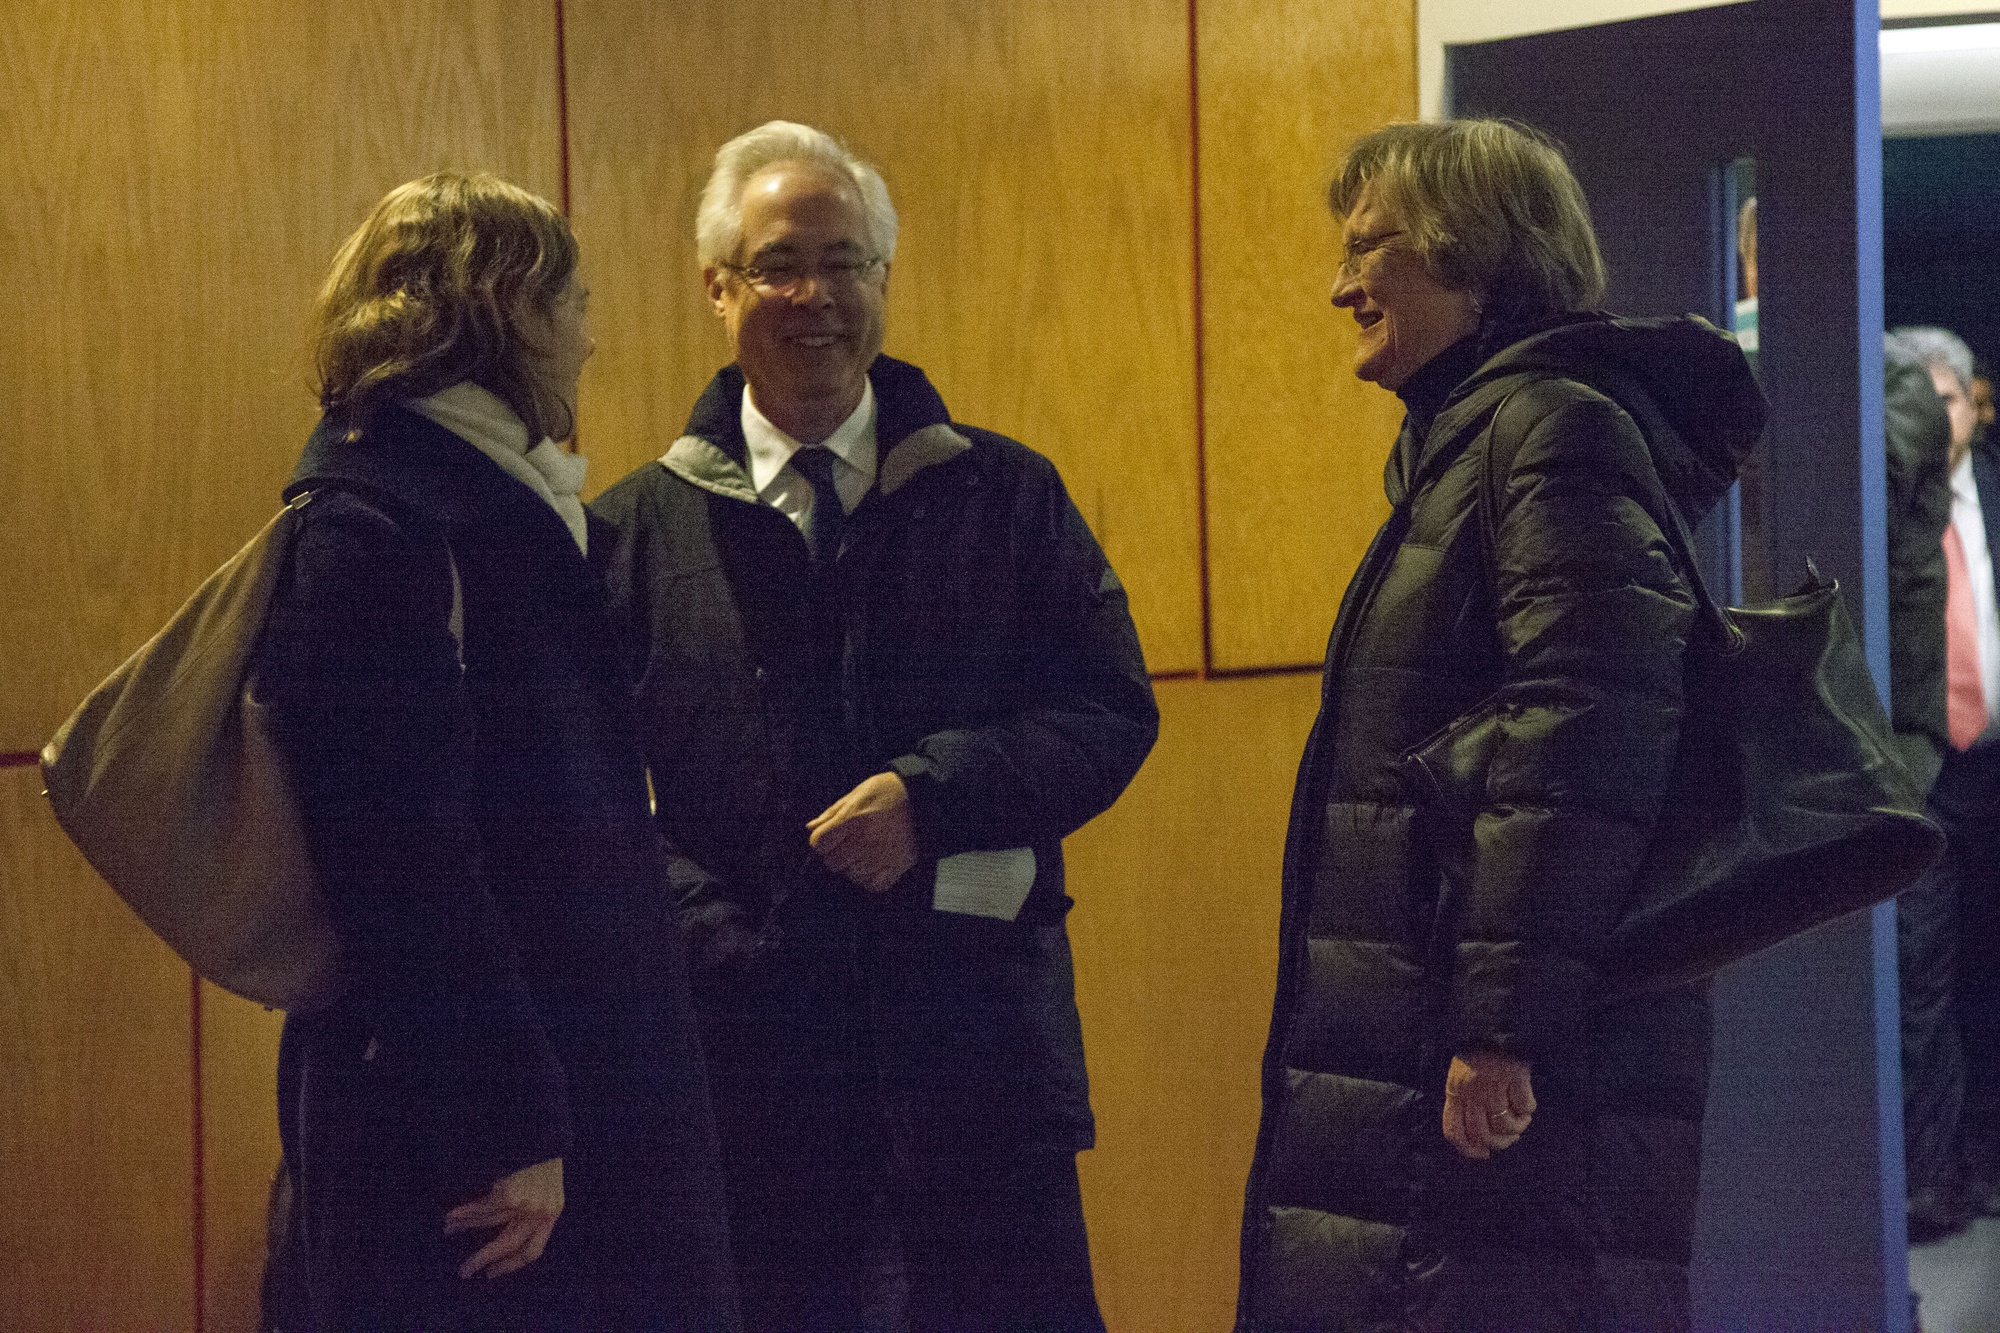 Philosophy professor Alison Simmons, English professor Louis Menand and University President Drew G. Faust talk after the Faculty meeting on Tuesday.